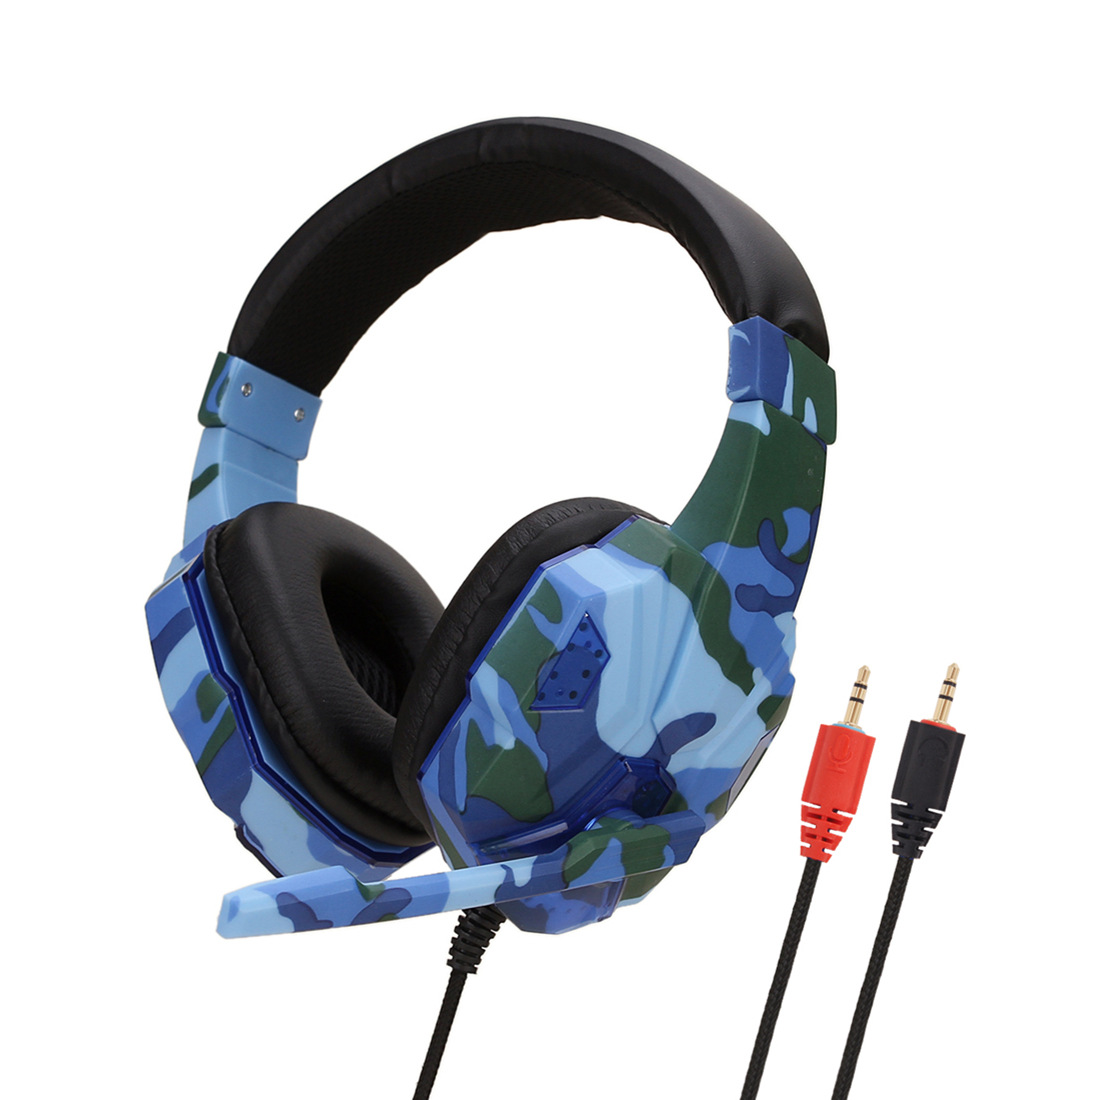 Earphone Gaming Headset Camouflage Headphones with Microphone for PC Laptop Camouflage Blue PC Edition